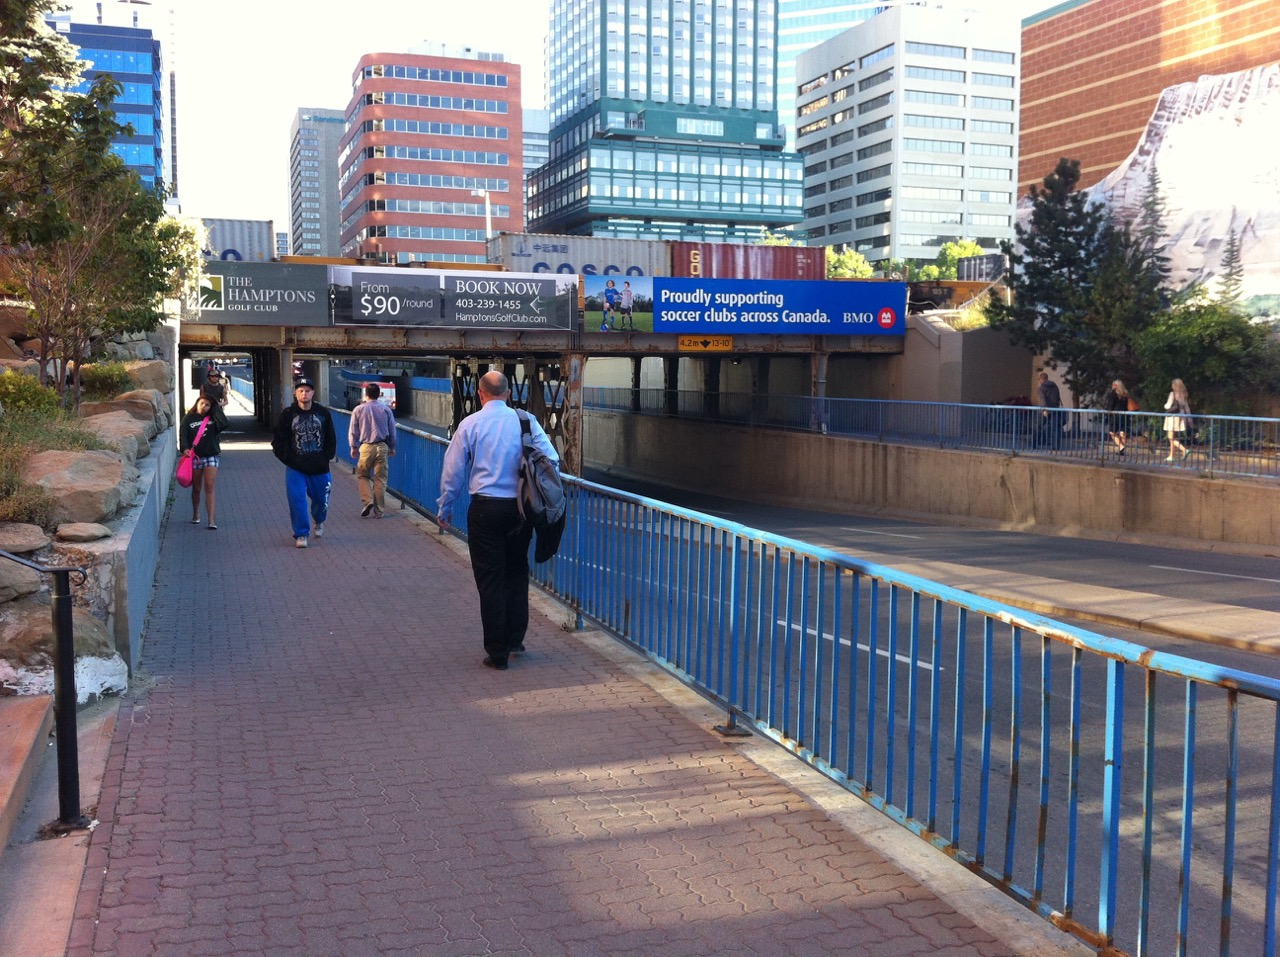 The 8th Street underpass linking 10th Ave with downtown's 9th Ave is currently under construction to create a more pedestrian friendly connection.